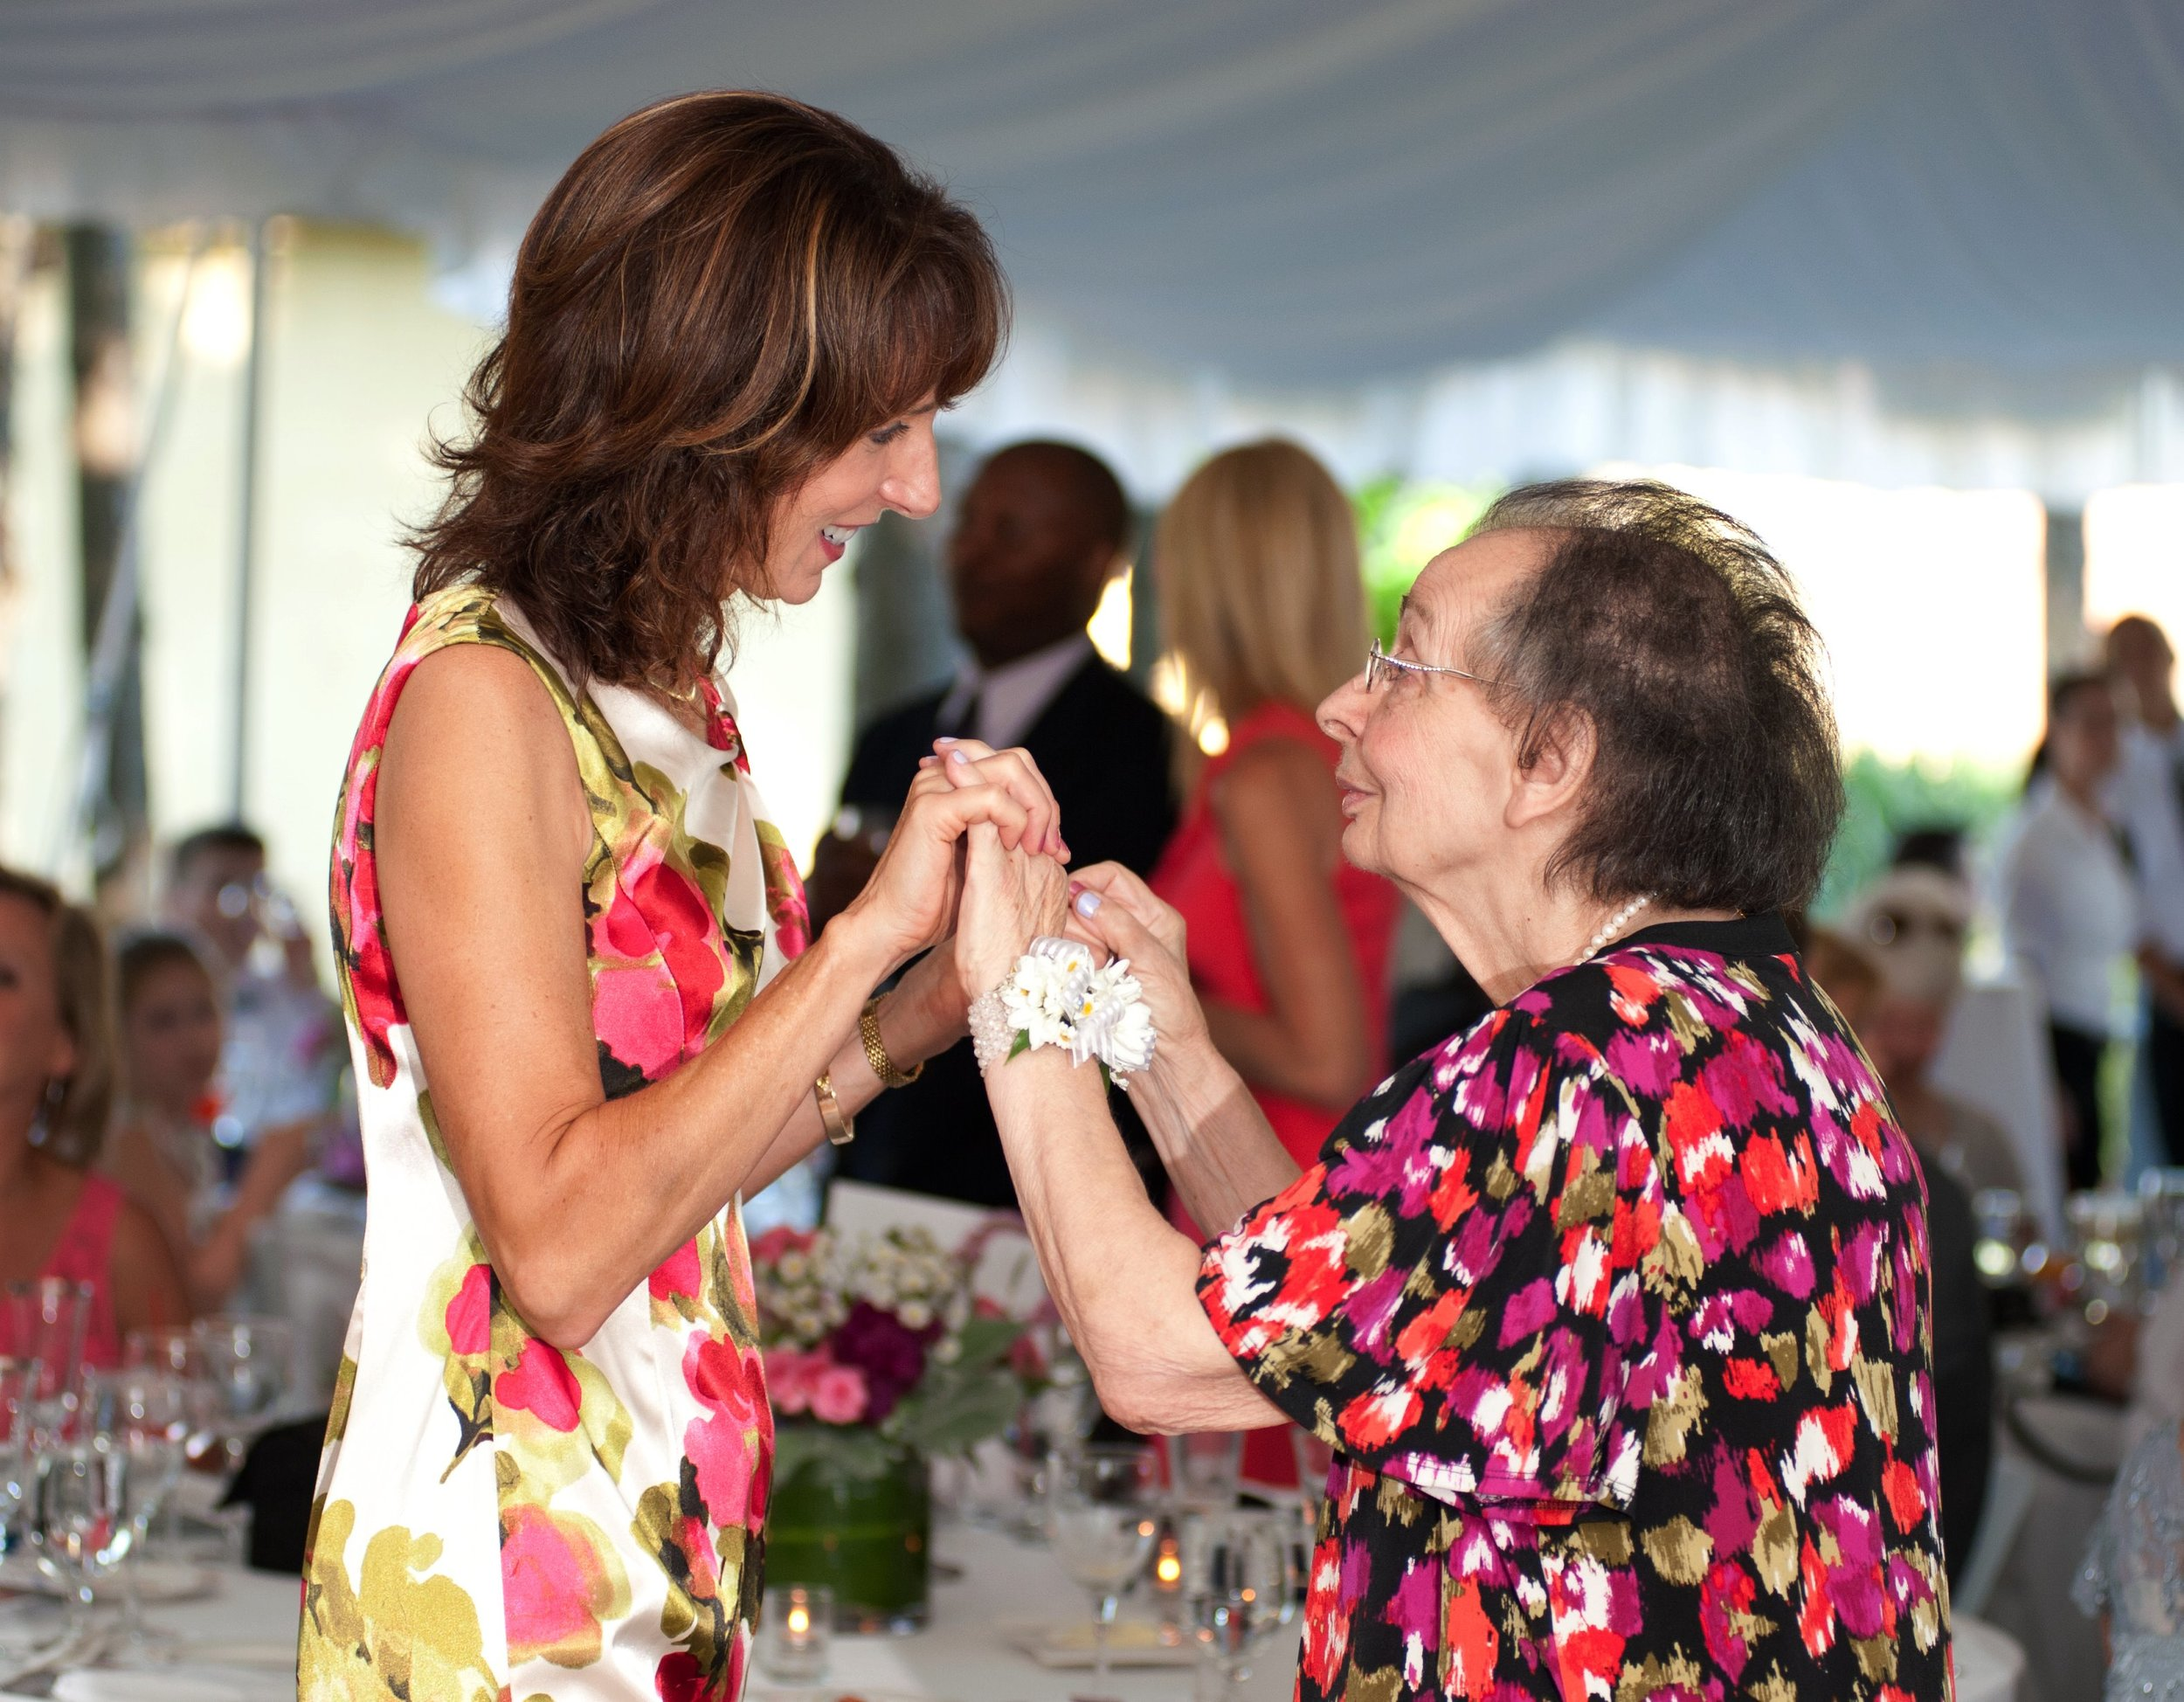 - Specialized services for families caring for a loved one with Alzheimer's/dementia.